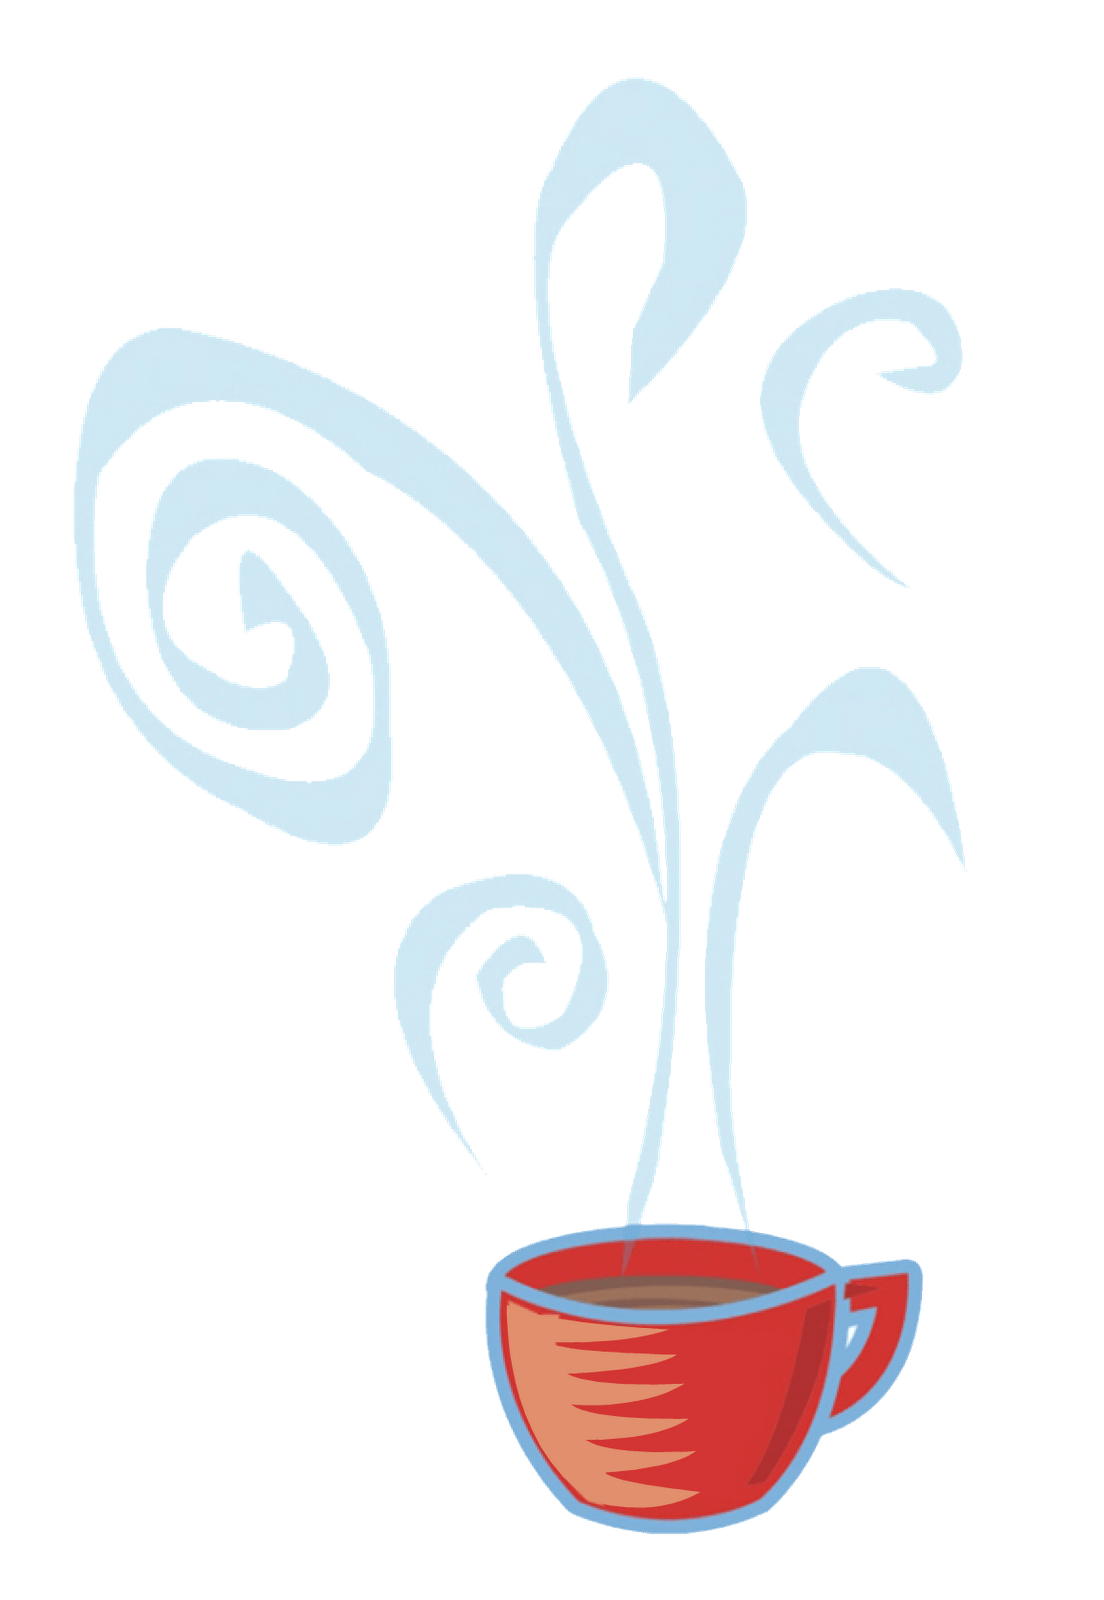 Steam clipart hot steam. Free coffee cliparts download